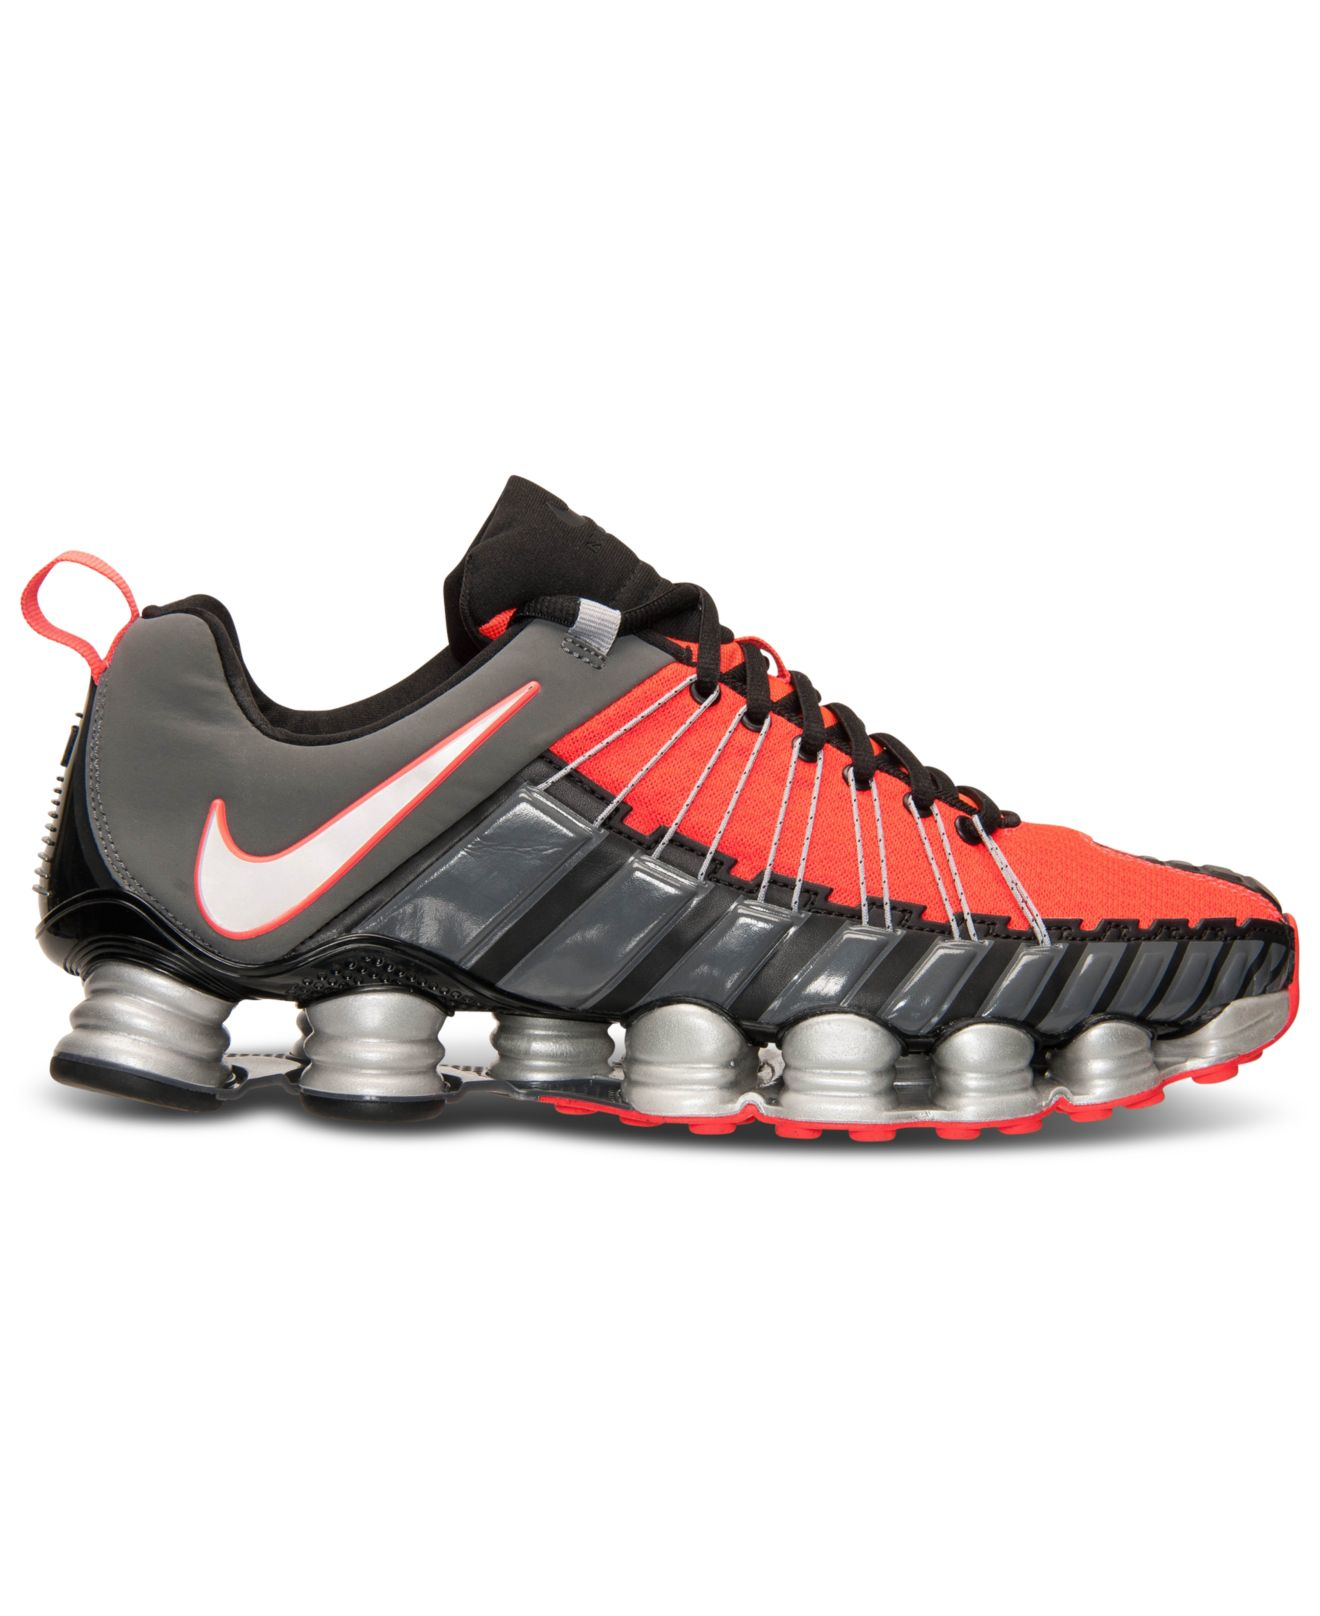 nike total shox running shoes